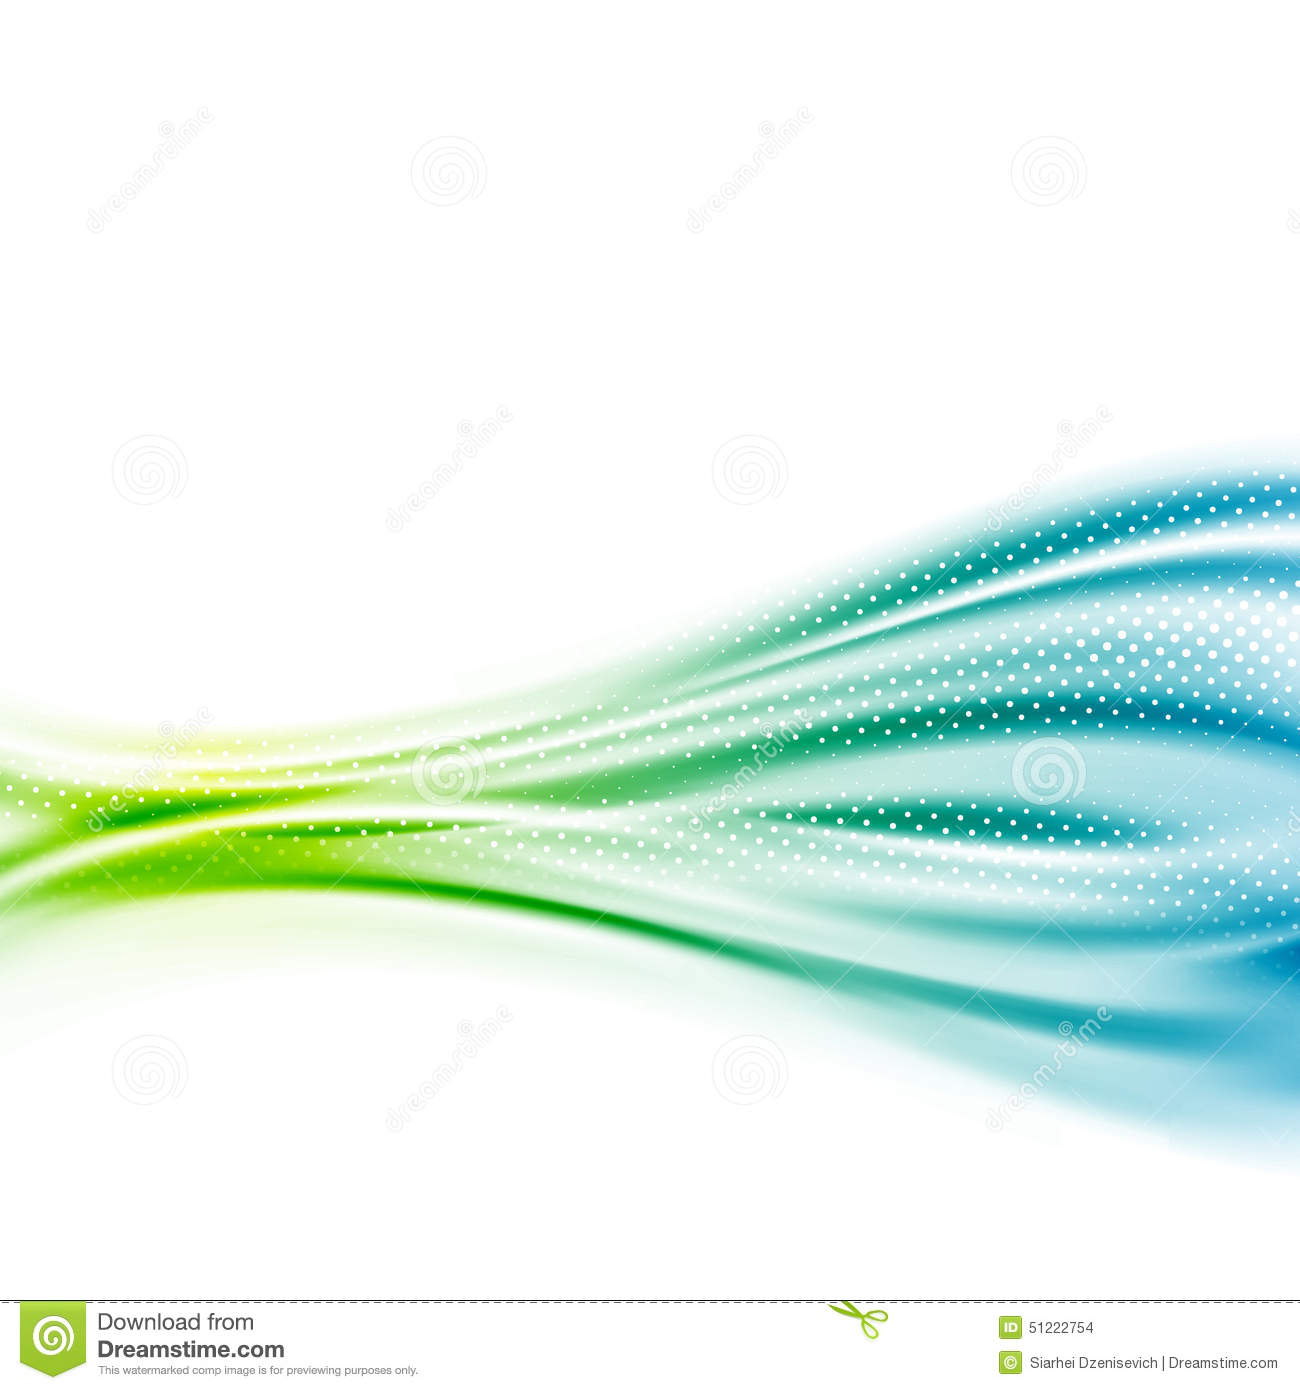 transparent swoosh satin abstract smooth wave background swish clipart swoosh clipart png